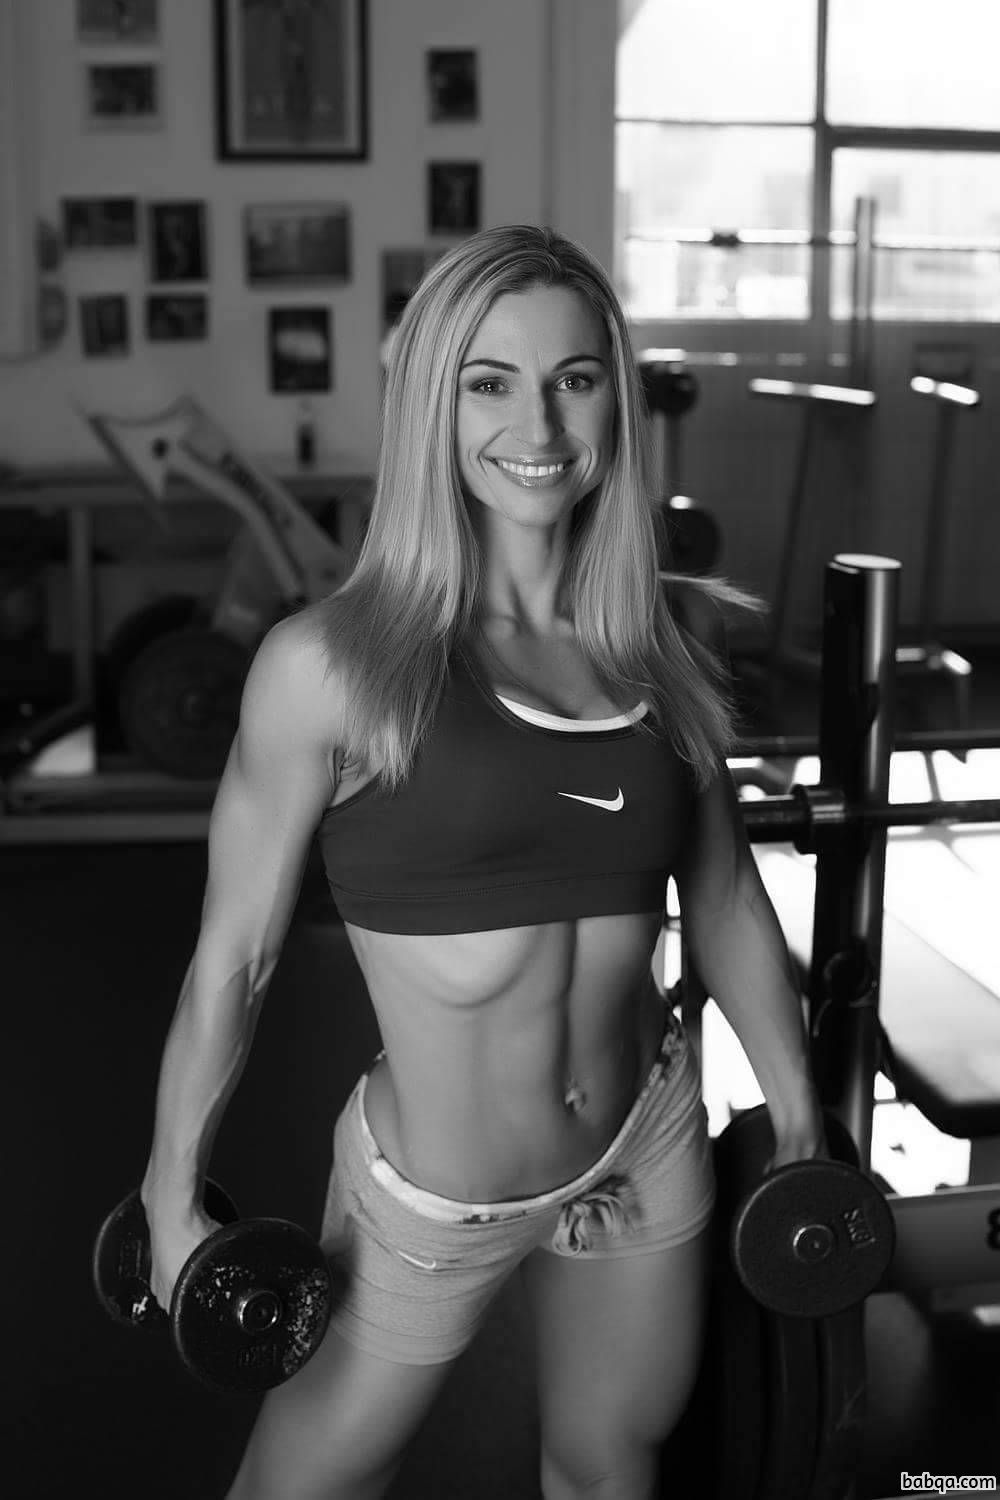 cute babe with strong body and muscle biceps pic from facebook